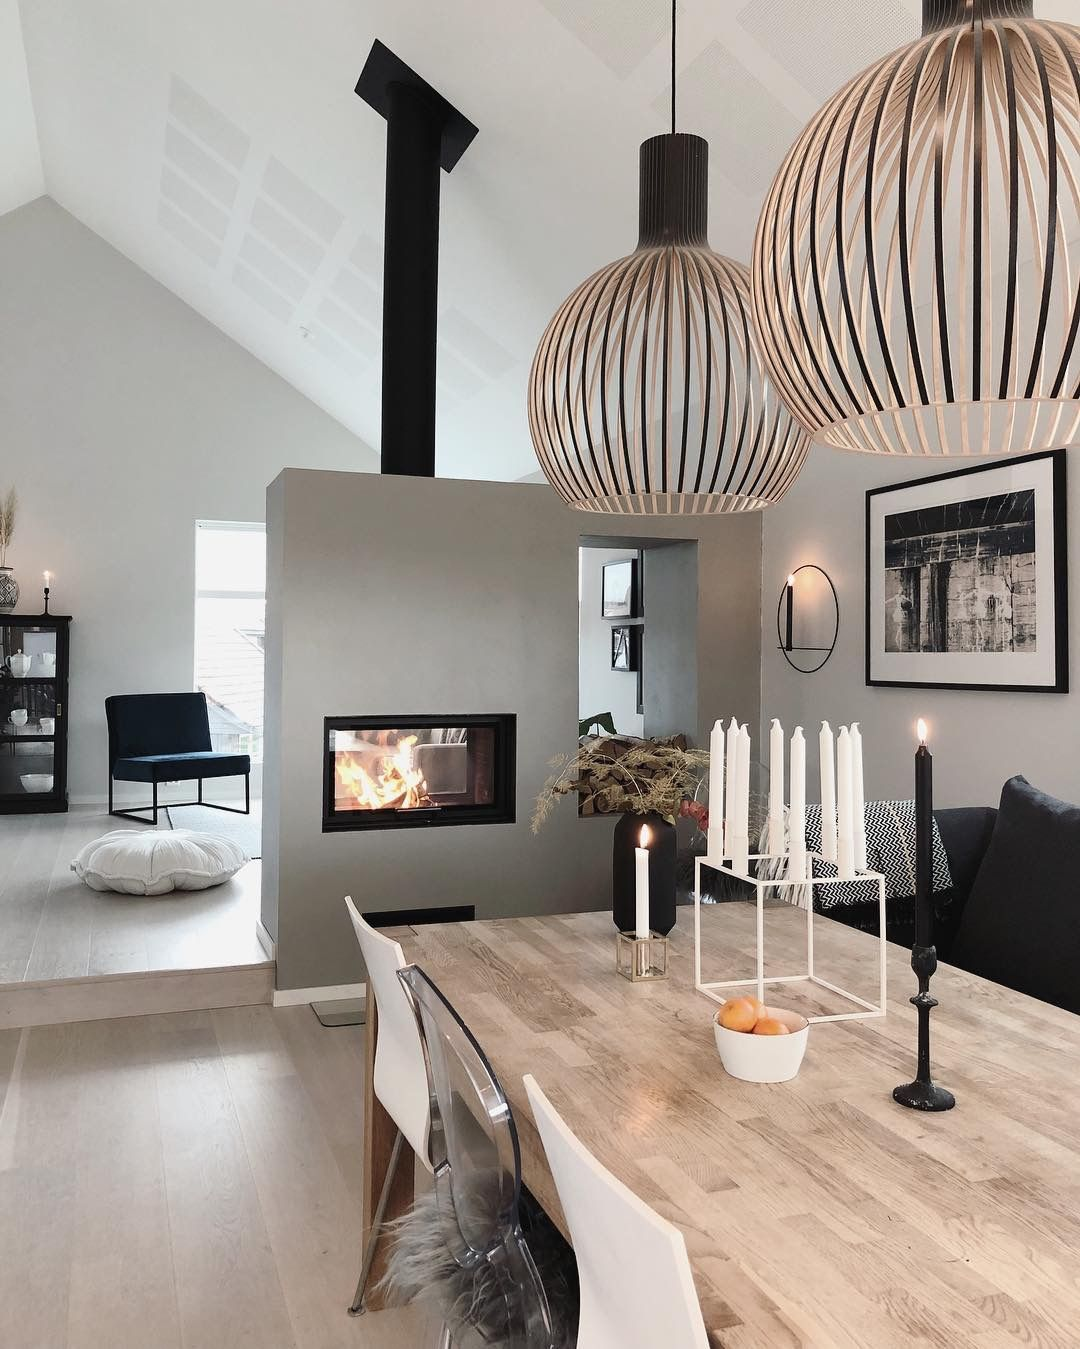 WHAT'S HOT ON PINTEREST 5 INSPIRING CONTEMPORARY 1 contemporary lighting WHAT'S HOT ON PINTEREST: 5 INSPIRING CONTEMPORARY LIGHTING! WHAT   S HOT ON PINTEREST 5 INSPIRING CONTEMPORARY 1